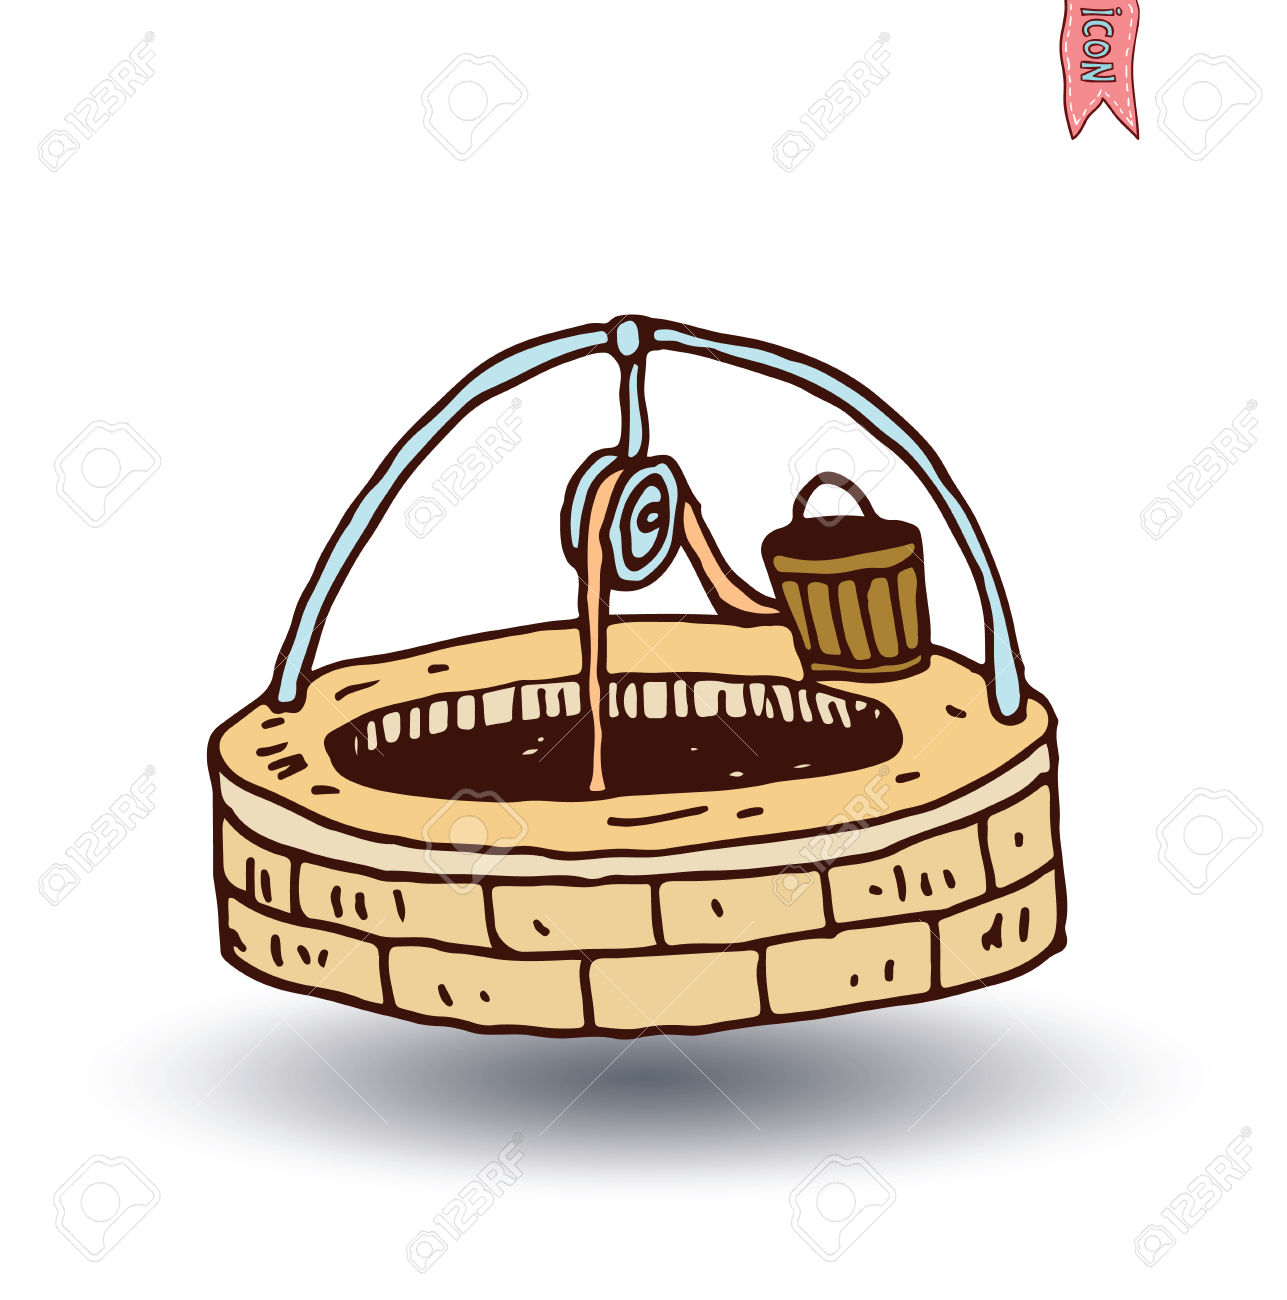 Water Well And Bucket, Vector Illustration. Royalty Free Cliparts.